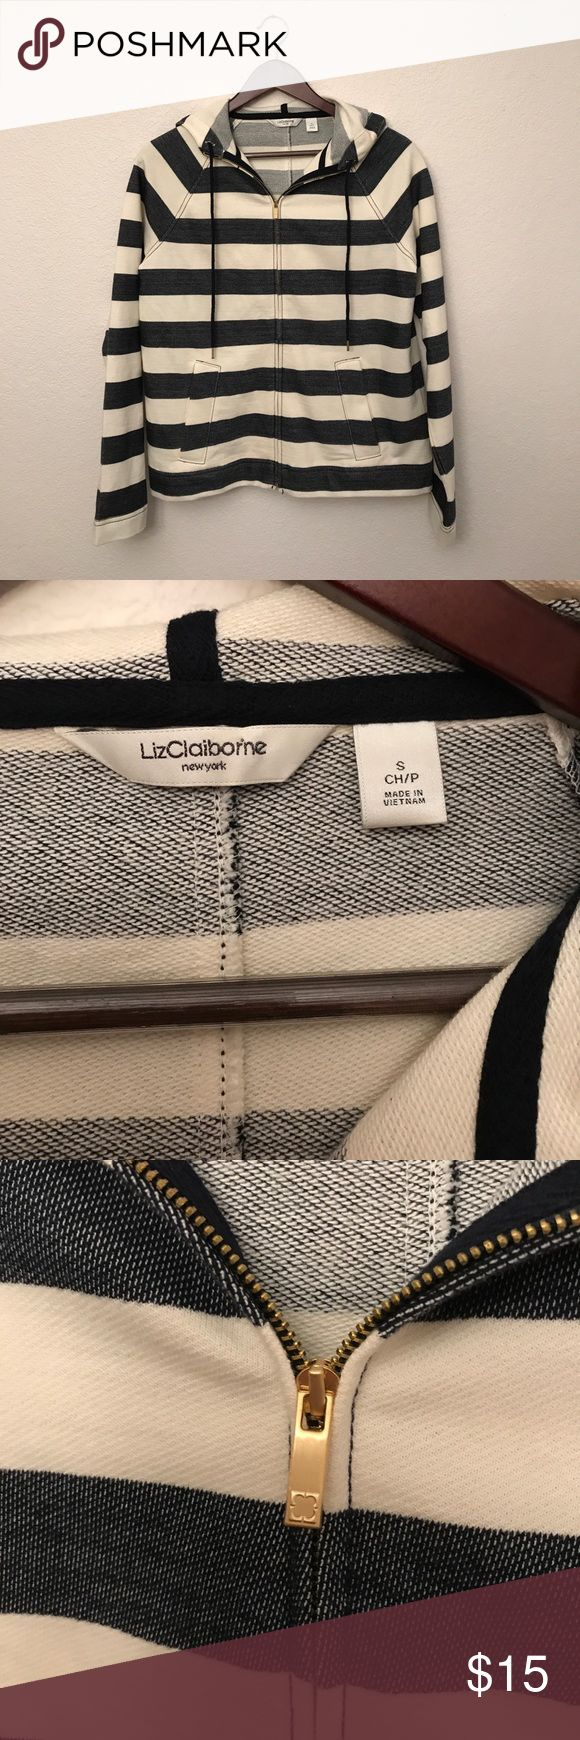 Liz Claiborne Zip Up Perfect condition Liz Claiborne zip up hoodie. Modern, nautical, and light weight. Cut gold detailing on zipper and hoodie strings. Front pockets. Liz Claiborne Tops Sweatshirts & Hoodies